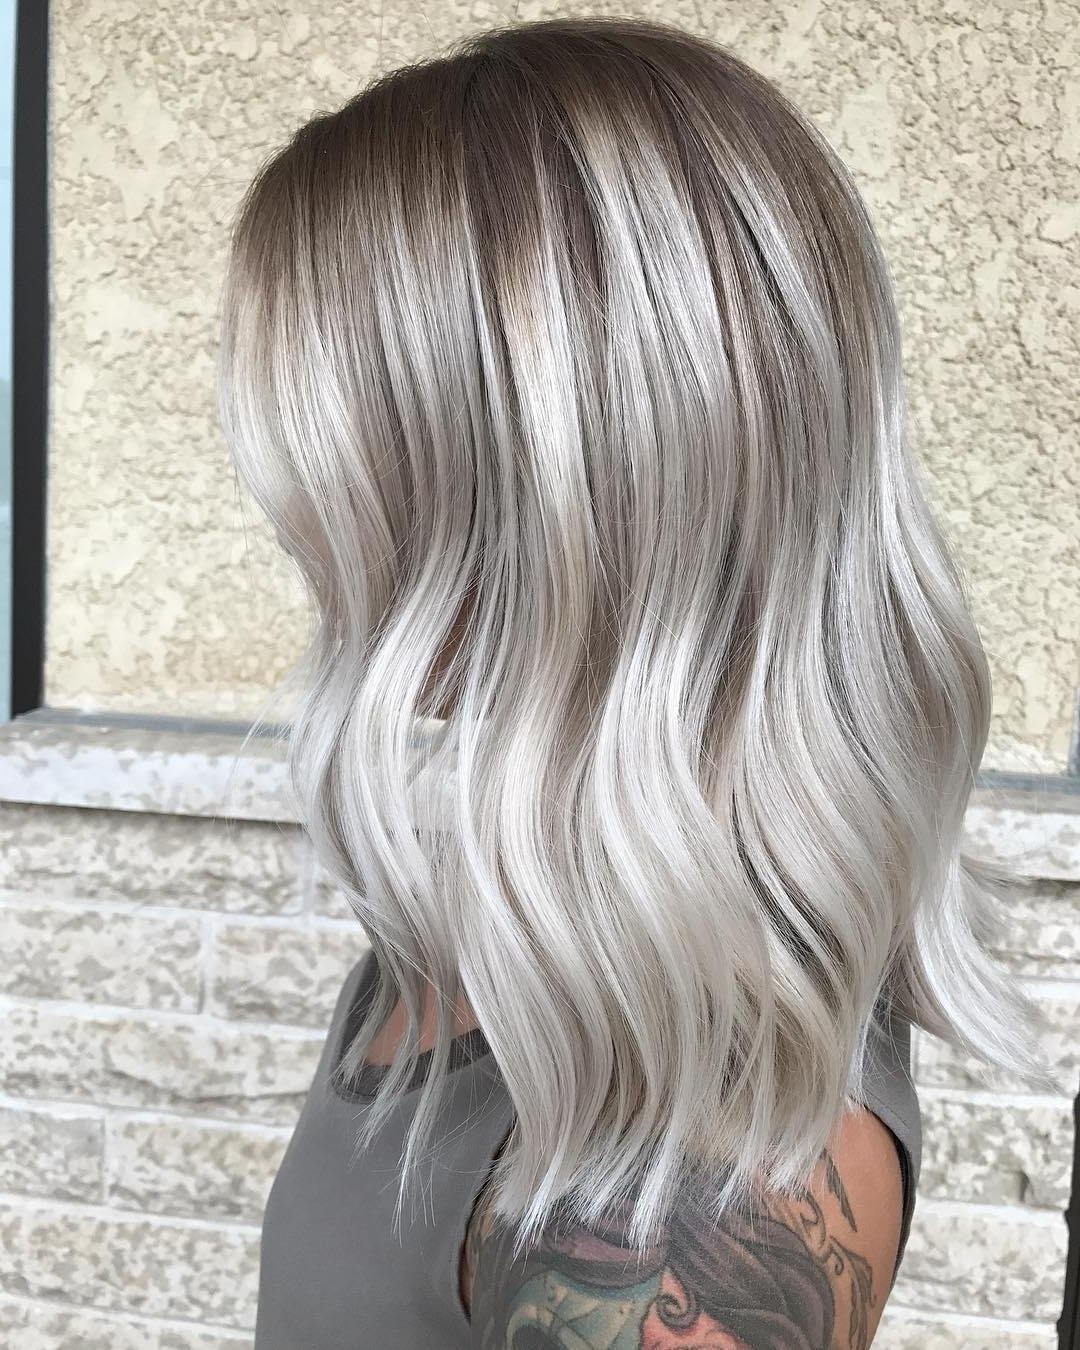 10 Ash Blonde Hairstyles For All Skin Tones, 2018 Best Hair Color Trends Intended For Well Liked Multi Tonal Mid Length Blonde Hairstyles (View 3 of 20)